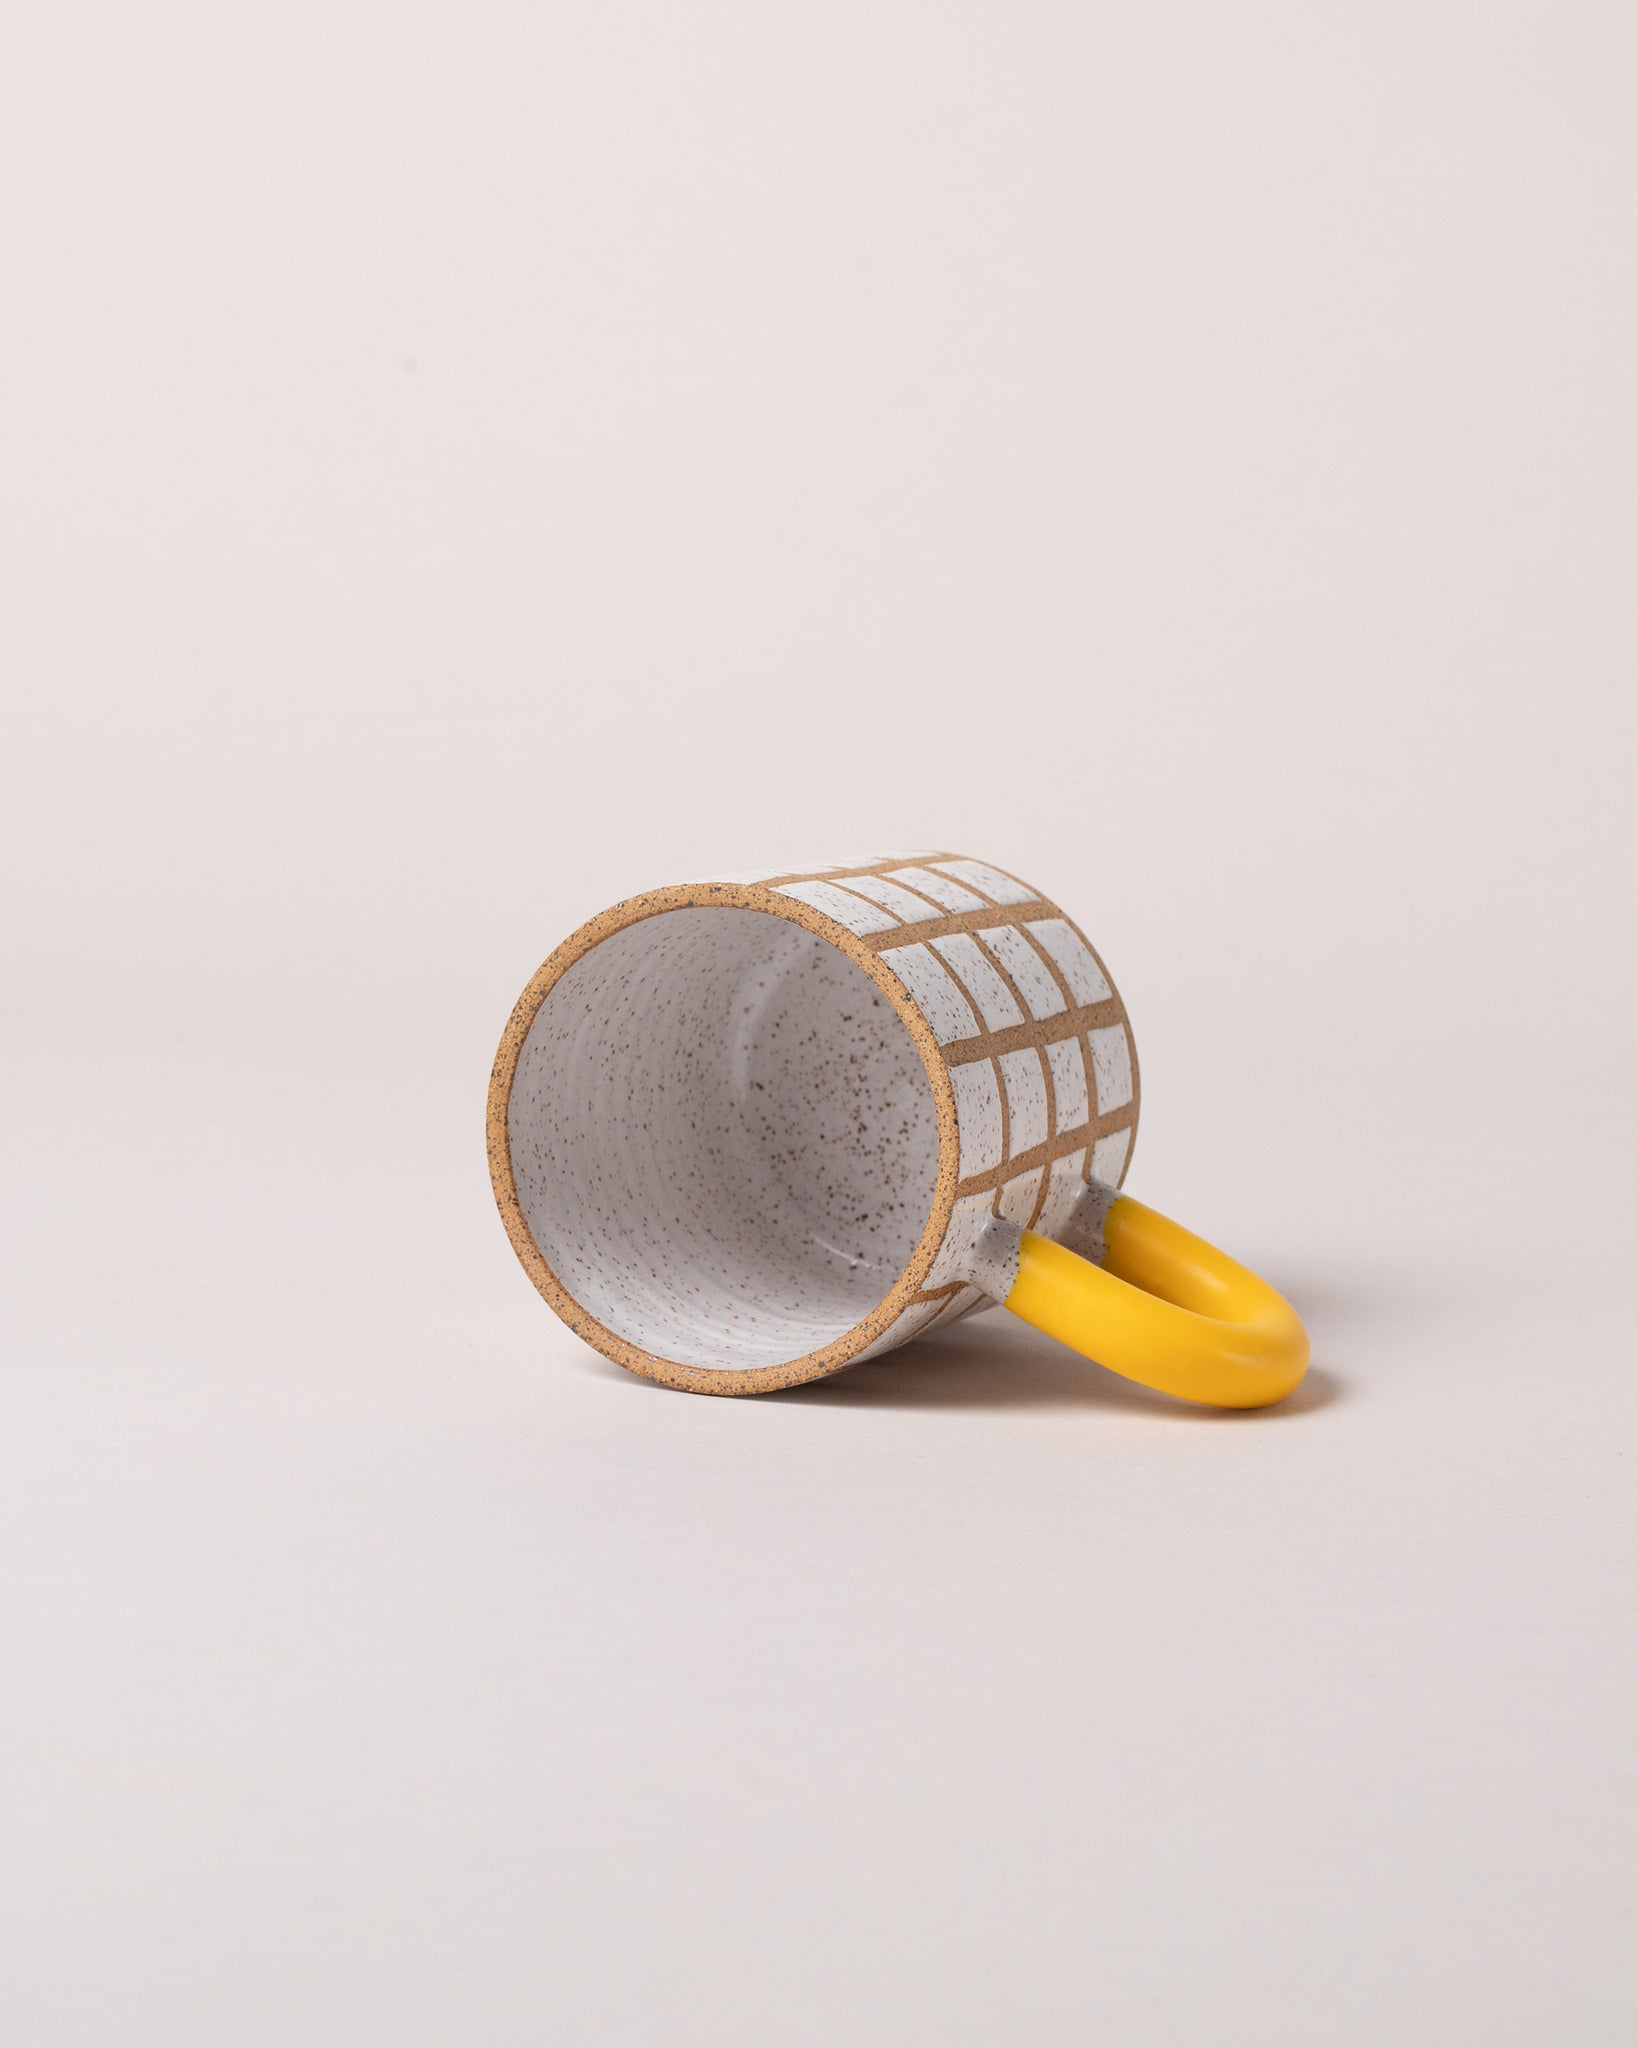 Grid Mug in Yellow Laid Flat